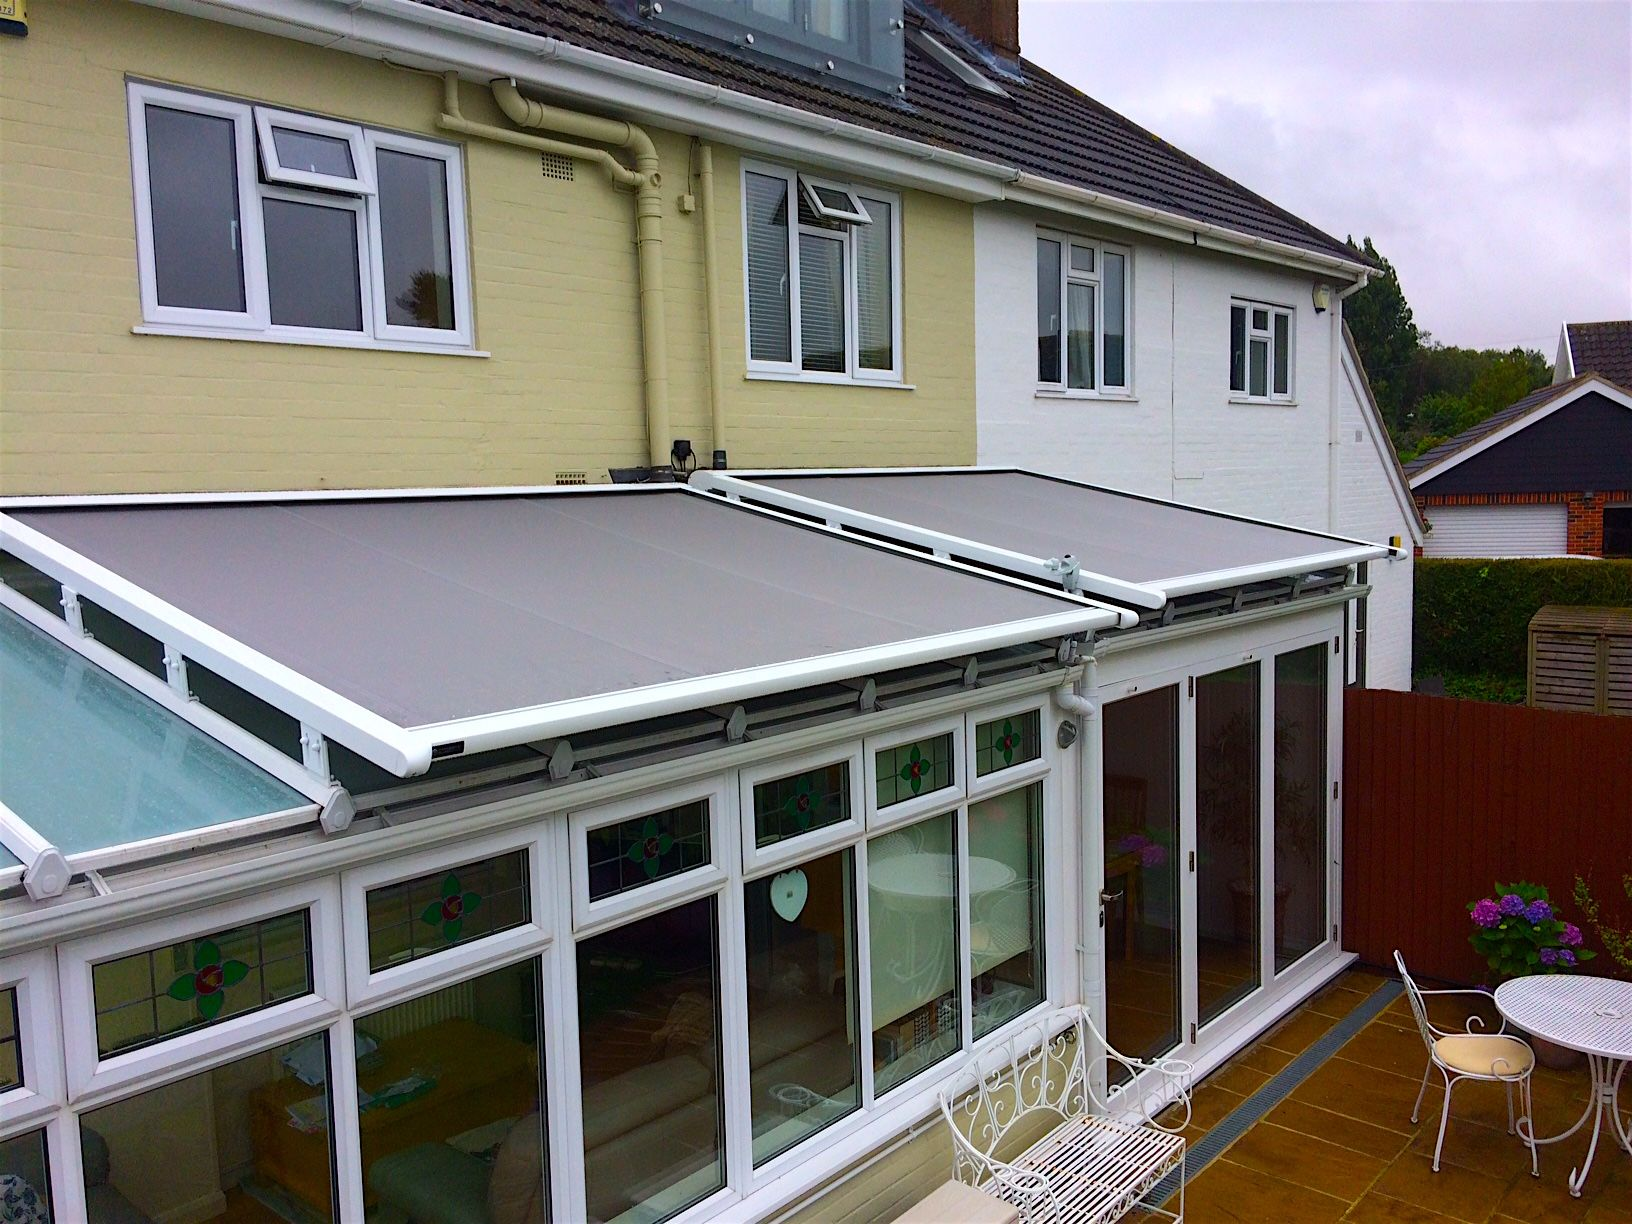 How Our External Roof Blinds Work Caribbean Blinds Conservatory Roof Blinds Conservatory Roof Roof